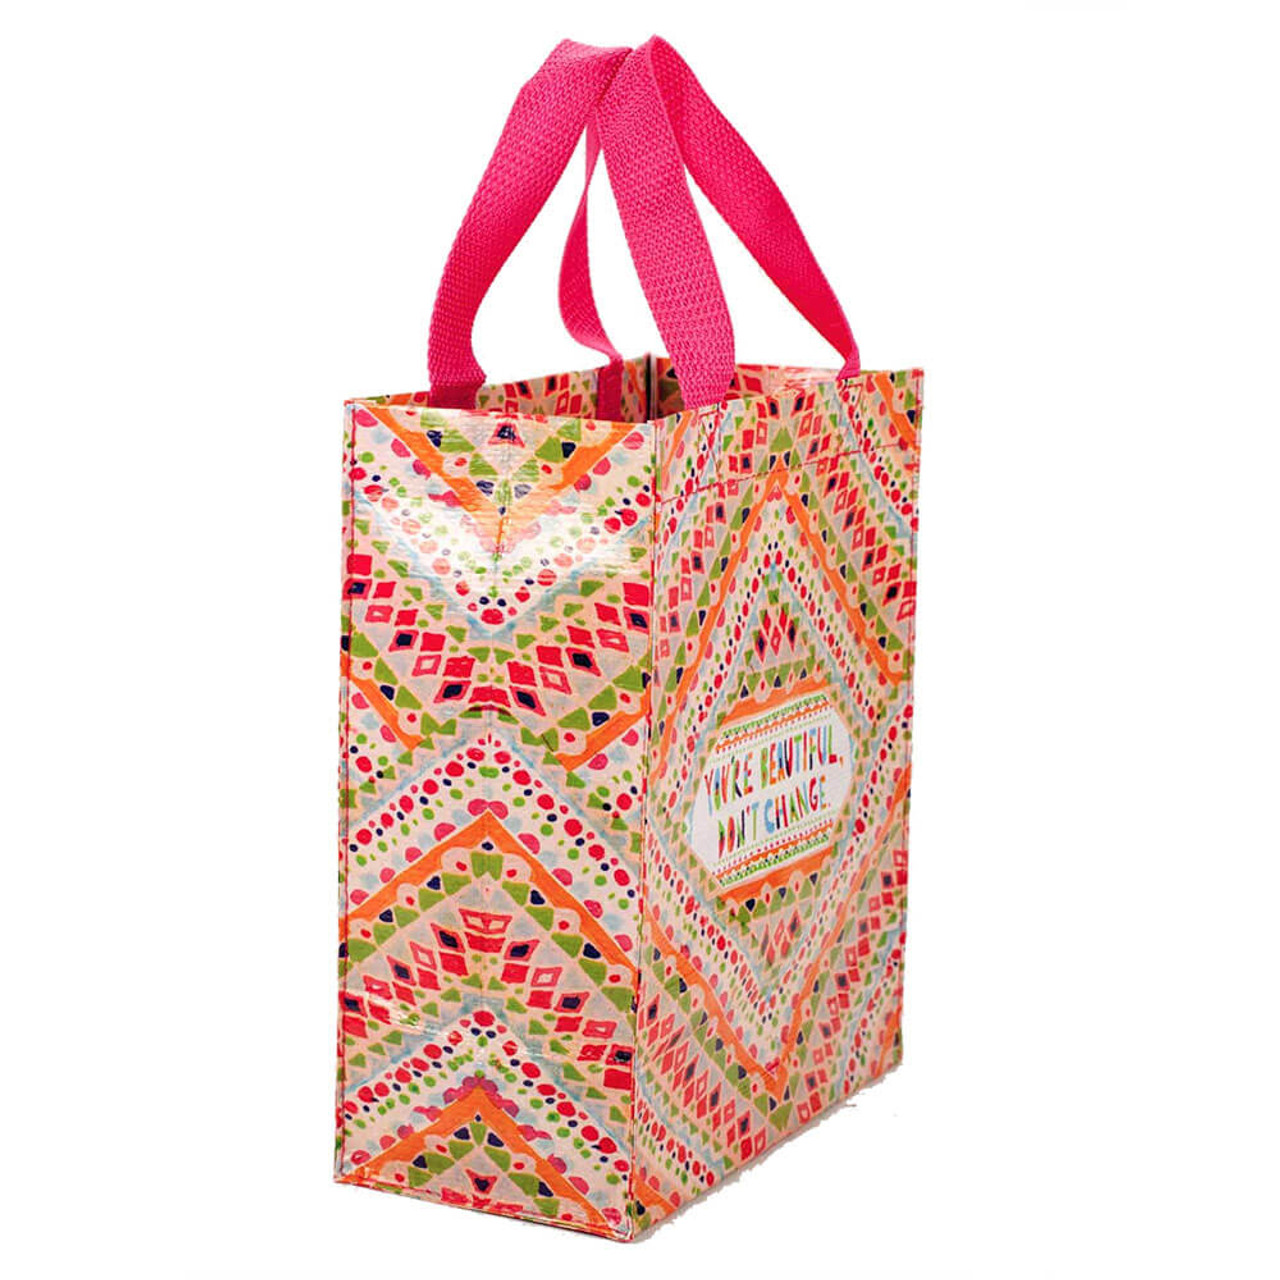 USE THIS TOTE FOR EVERYTHING AND ANYTHING!